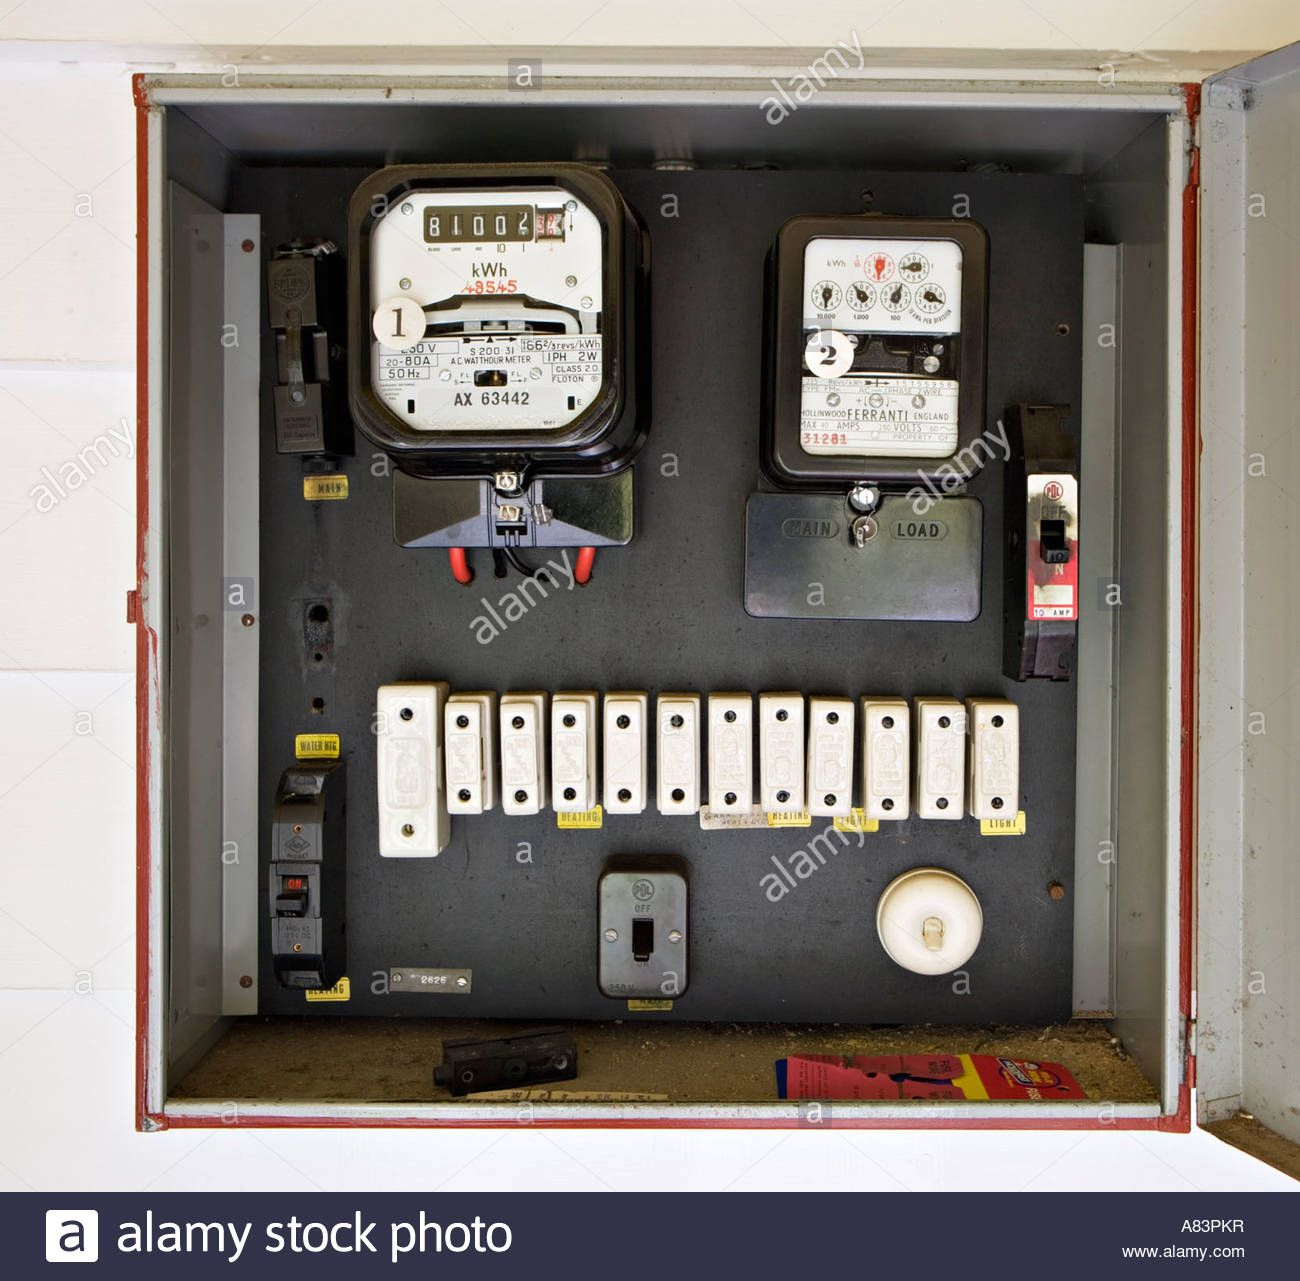 electricity meter in box with old style fuses circa 1962 in new rh pinterest com old style fuse box parts old fashioned fuses for fuse box